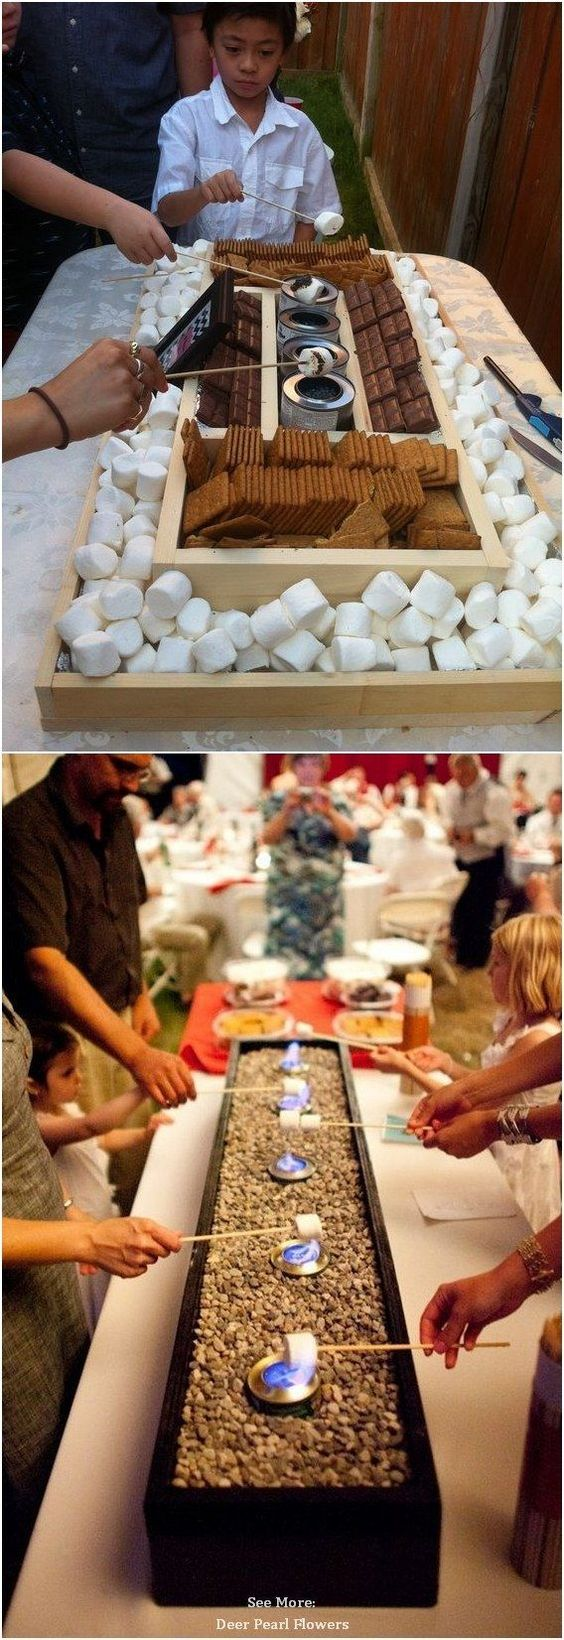 Prime 25 Rustic Barbecue BBQ Wedding ceremony Concepts  #barbecue #ideas #rustic